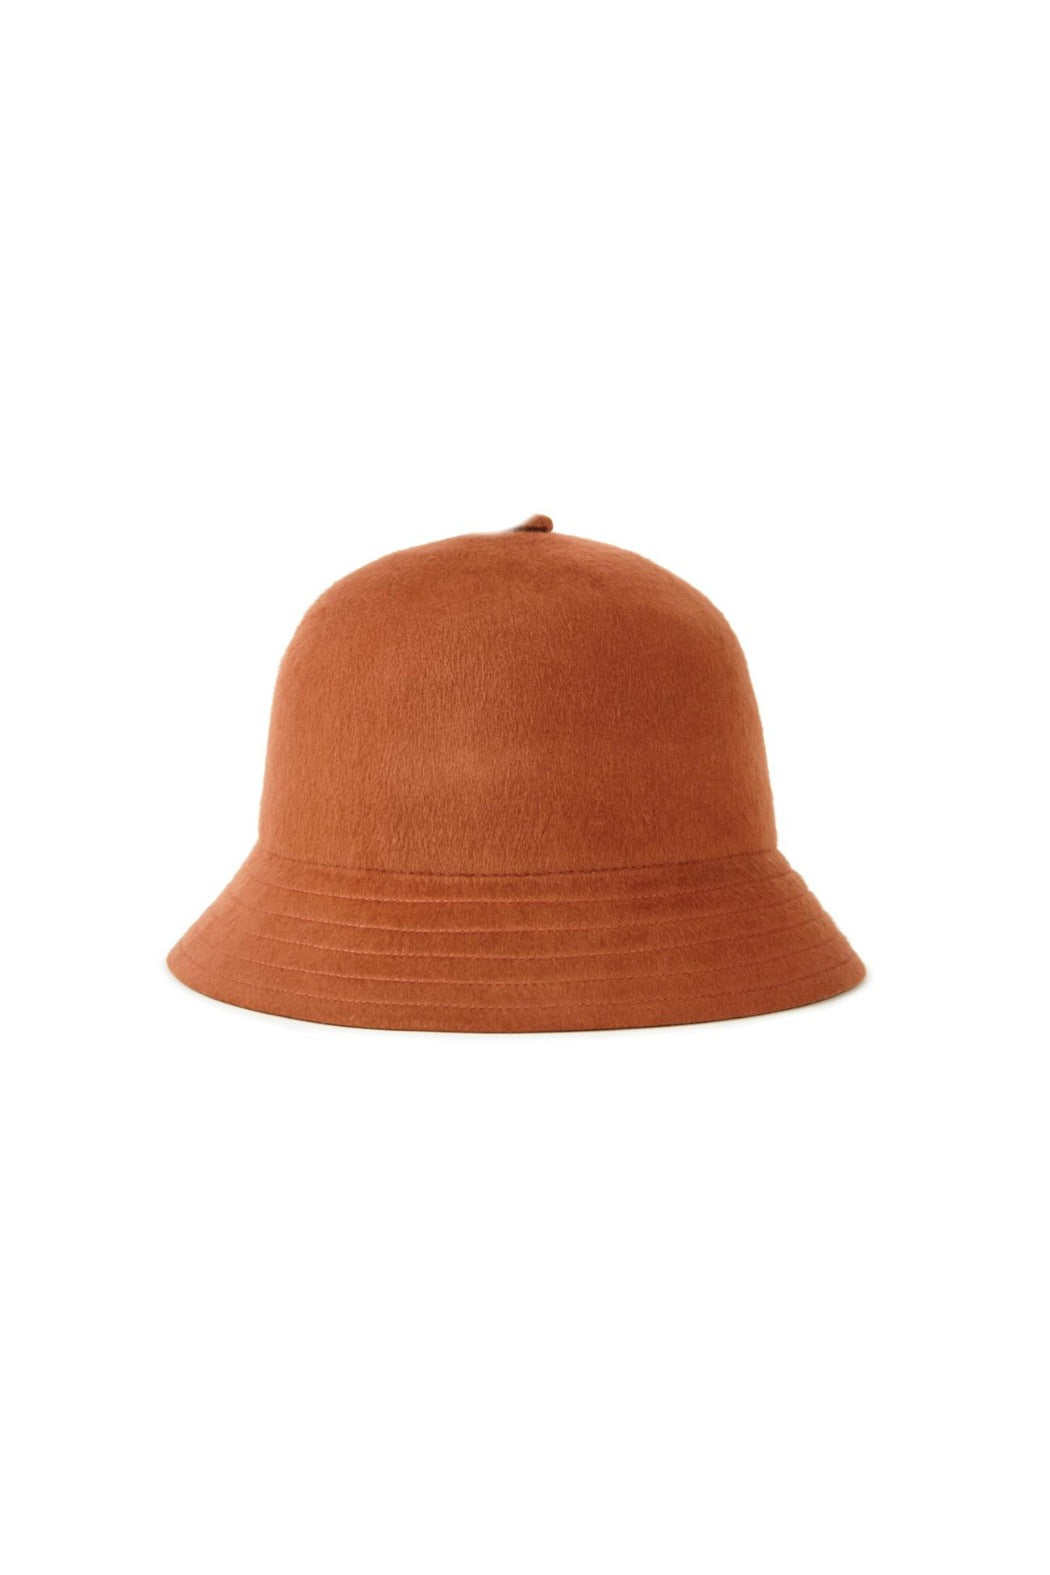 Brixton Essex Bucket Hat in Rust – Queen of Hearts and Modern Love f694cdd766ab